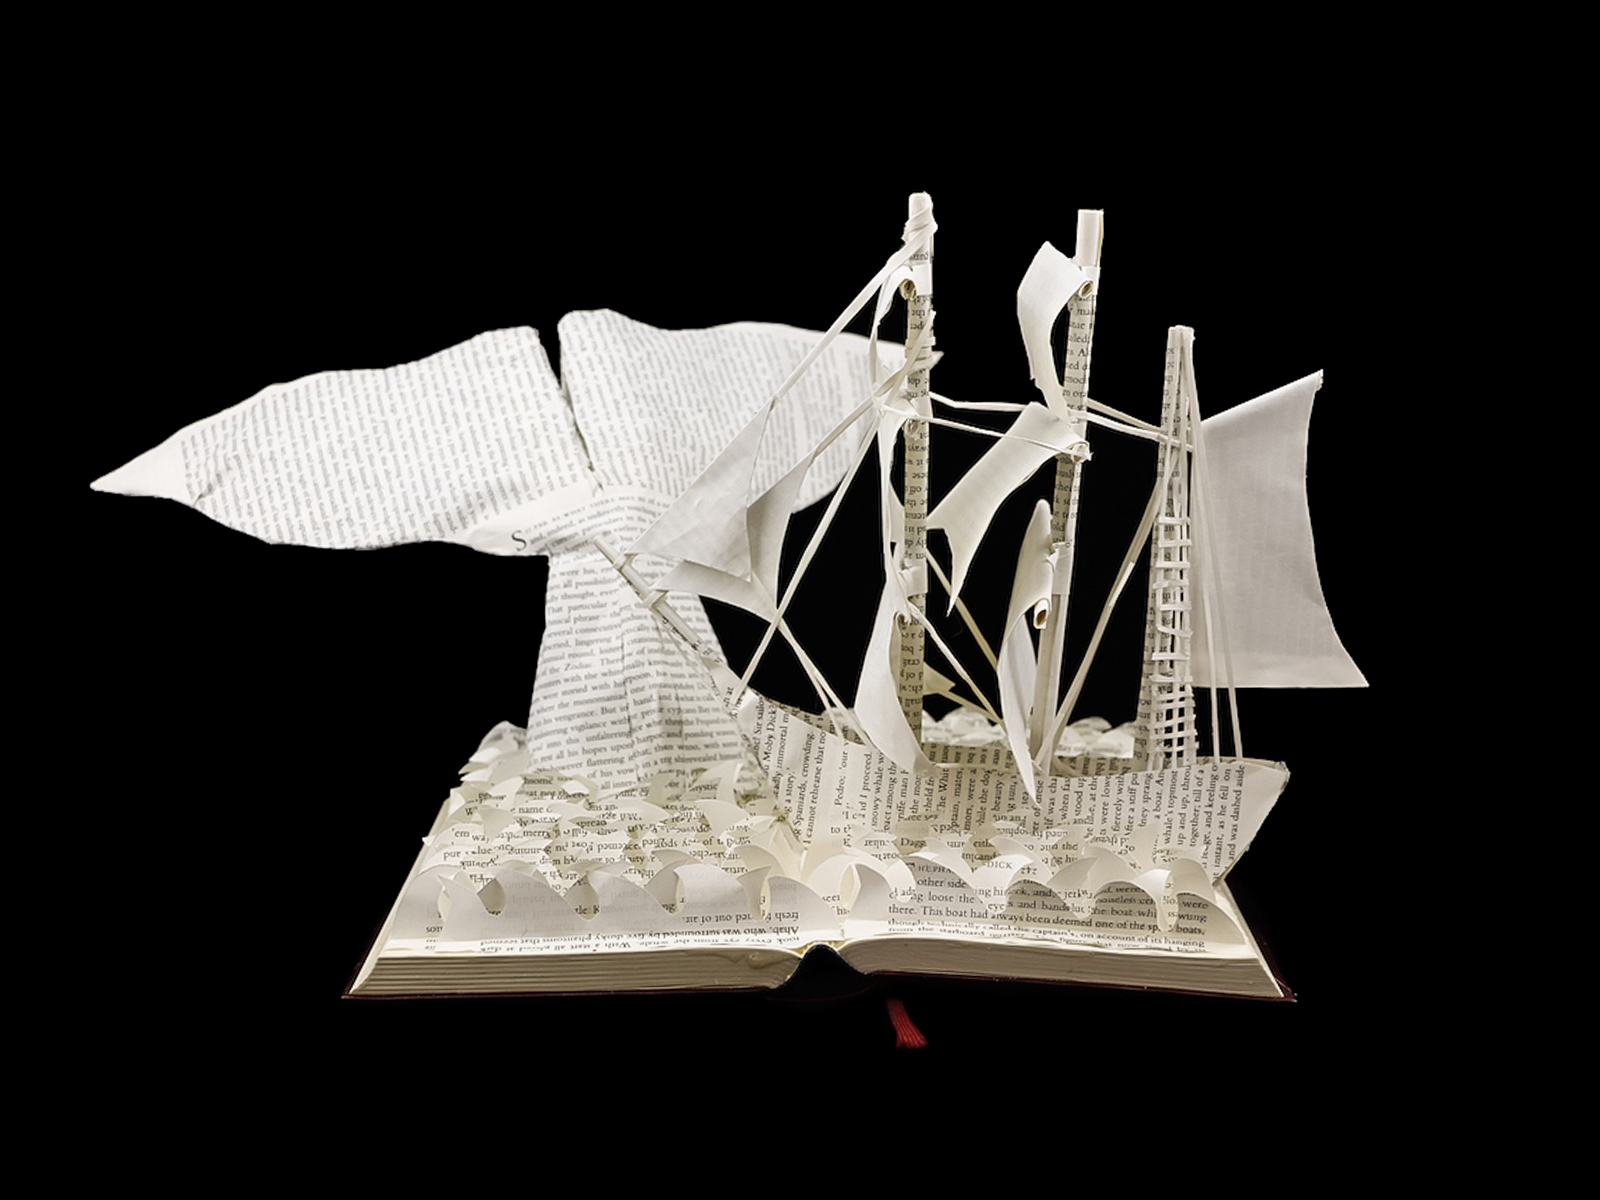 Custom Book Sculpture by Jamie B. Hannigan - Moby Dick